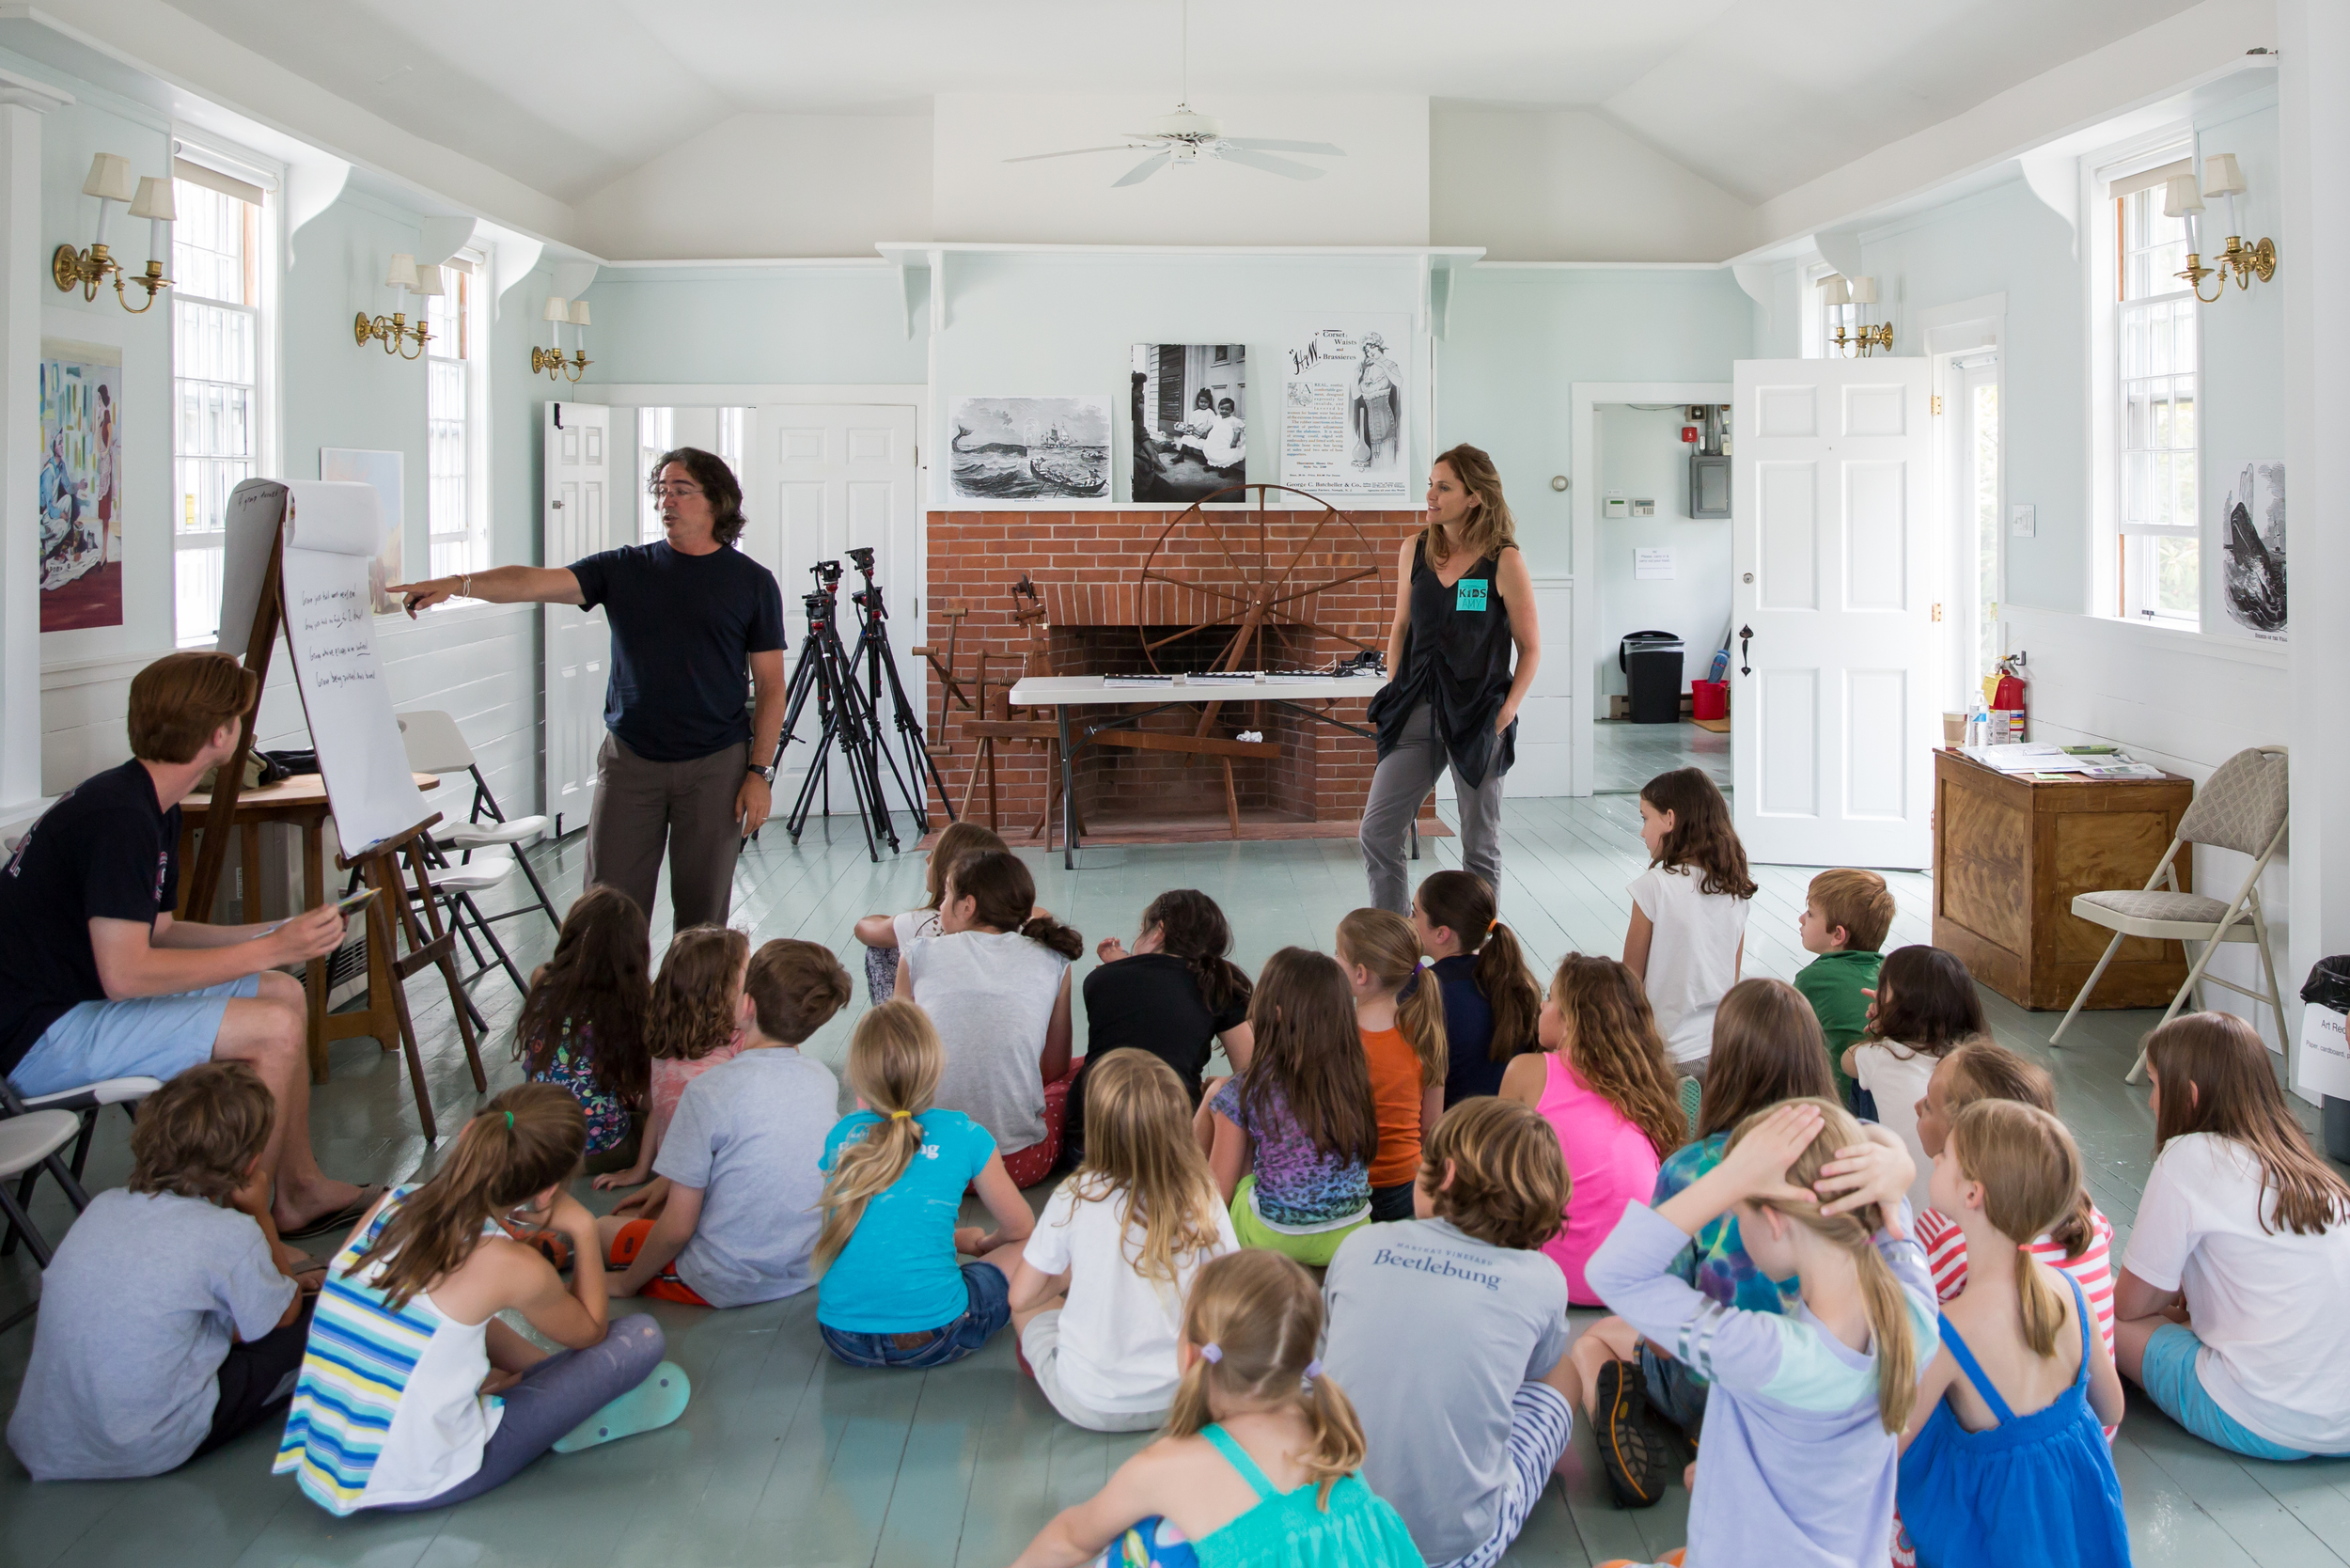 Actress Amy Brenneman and director Brad Silberling teach a free workshop for kids on July 9, 2015. Photo by Maria Thibodeau.